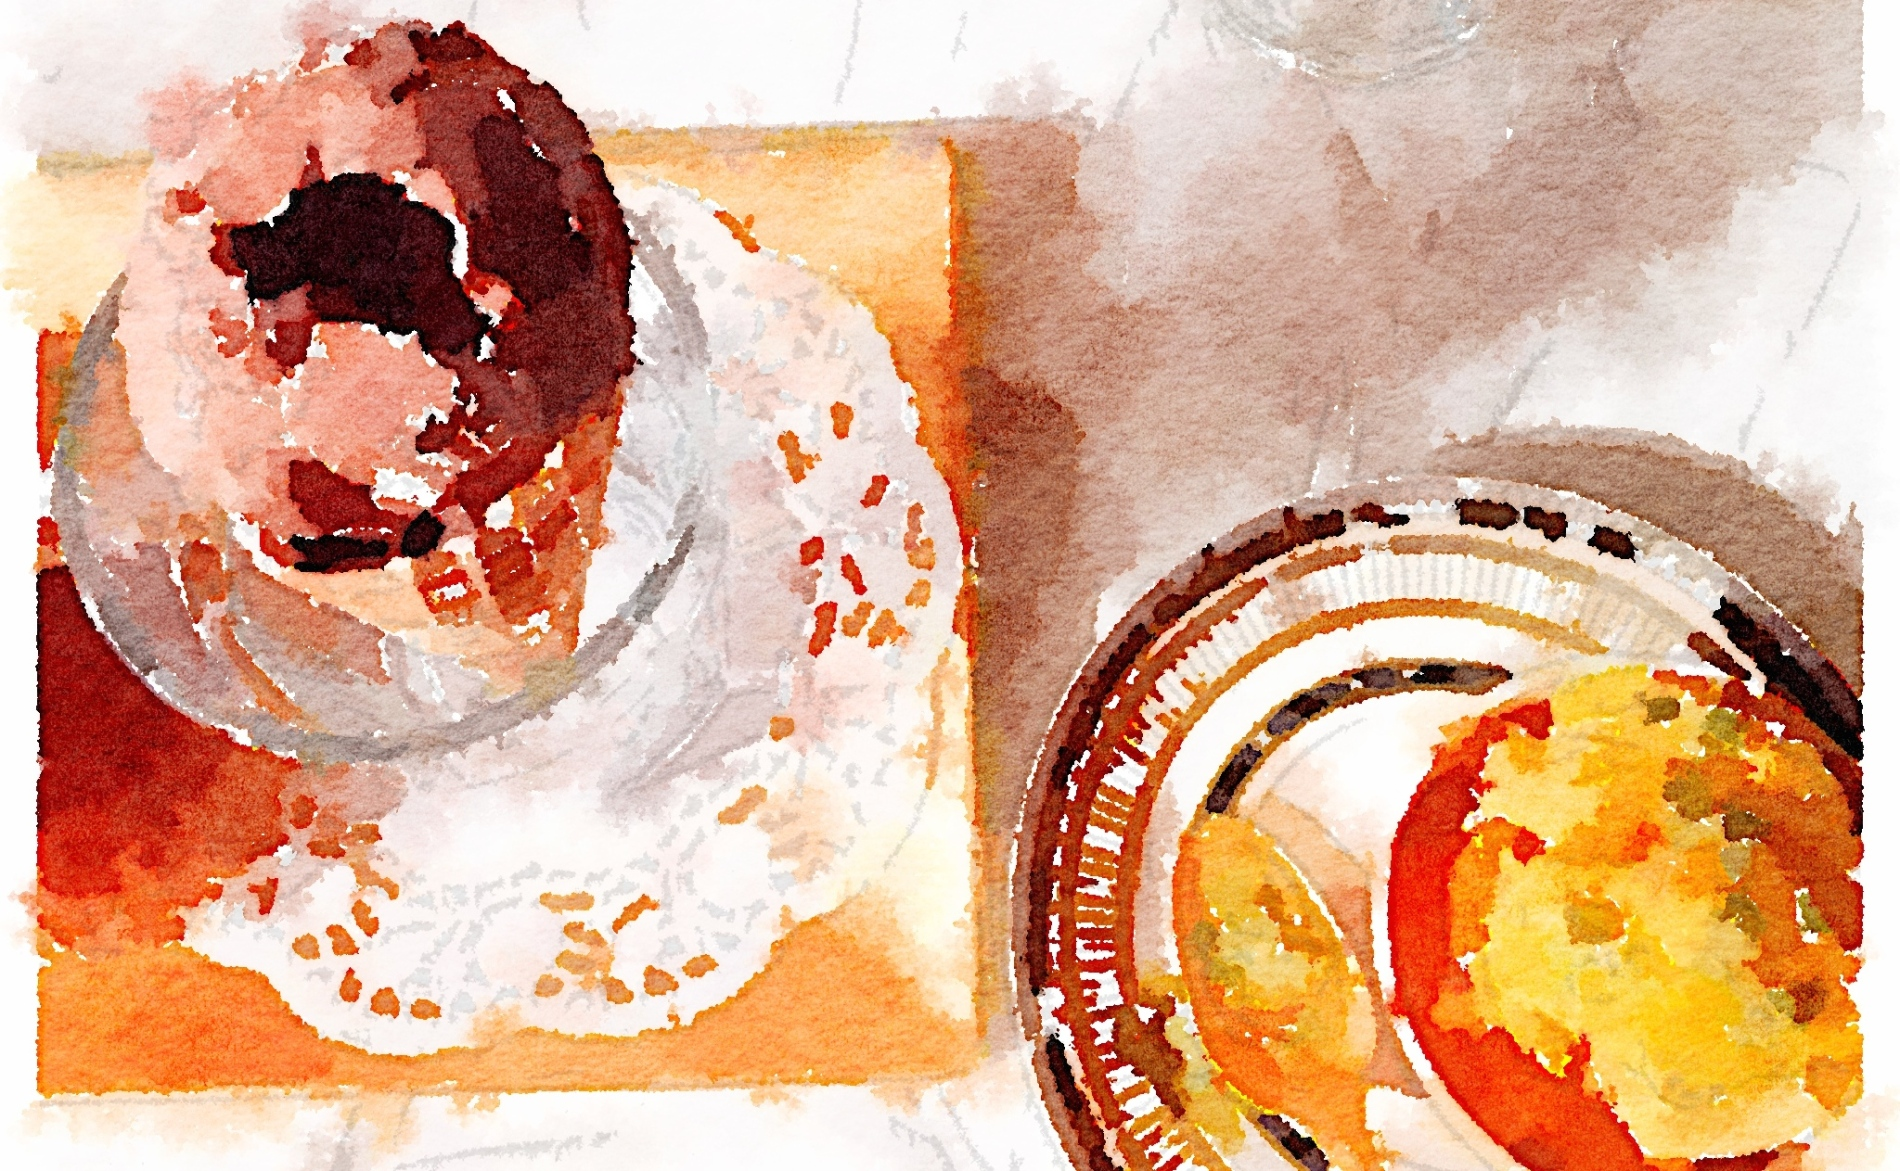 Semifreddo and sorbetto in watercolour